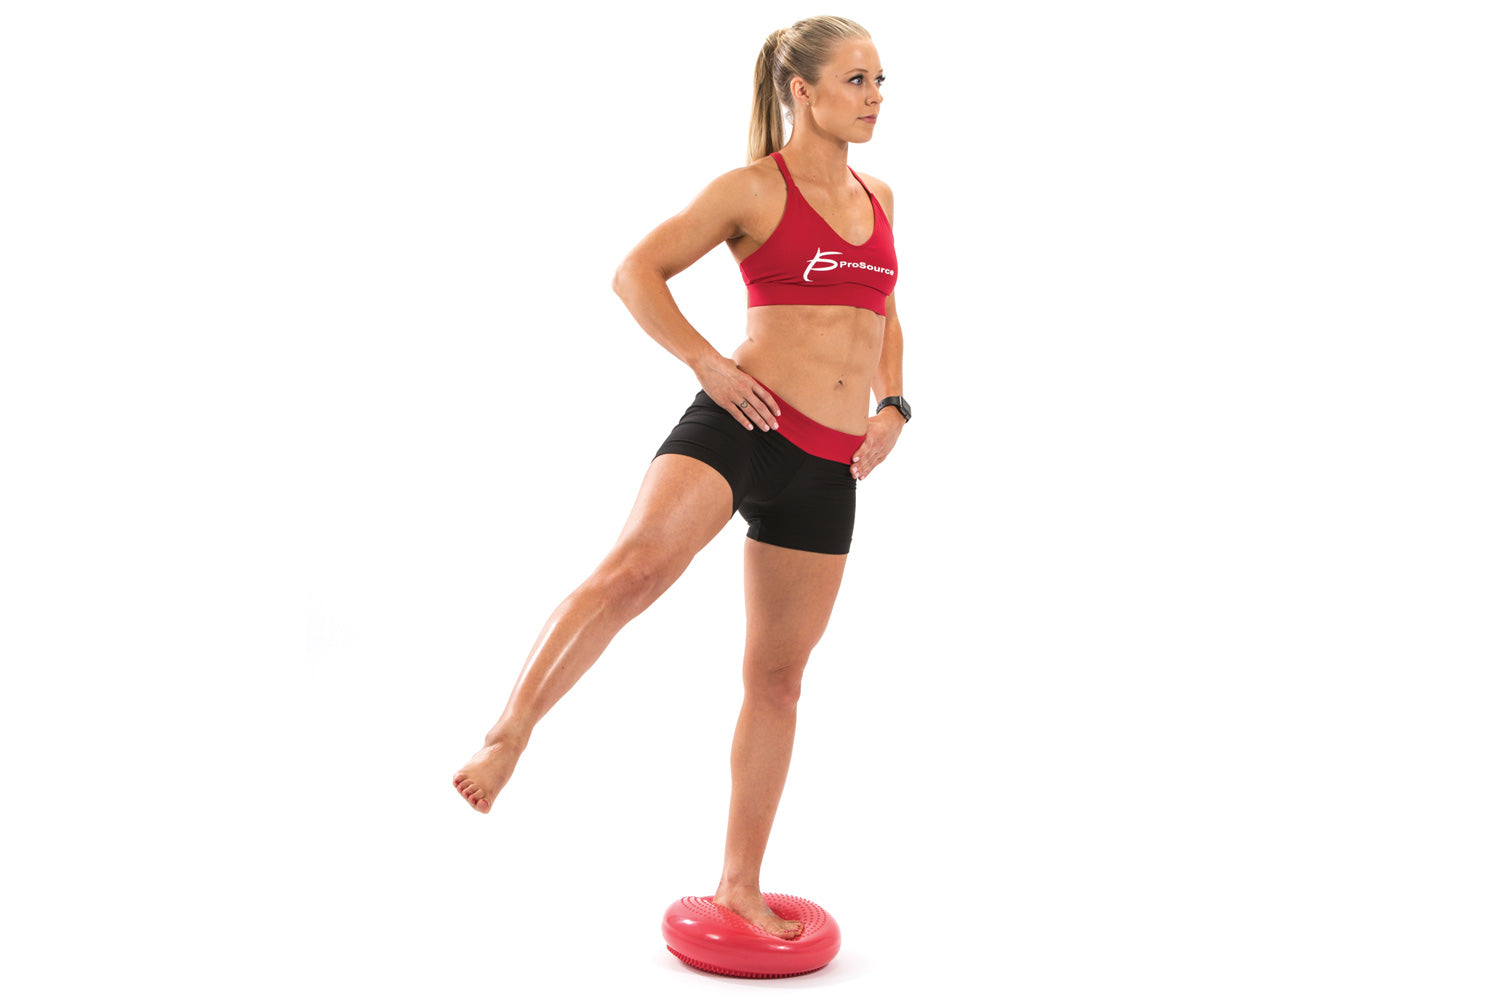 ProSource Five Core balance disc exercises for a full body workout - Core Balance Disc | Buy Balance Disc